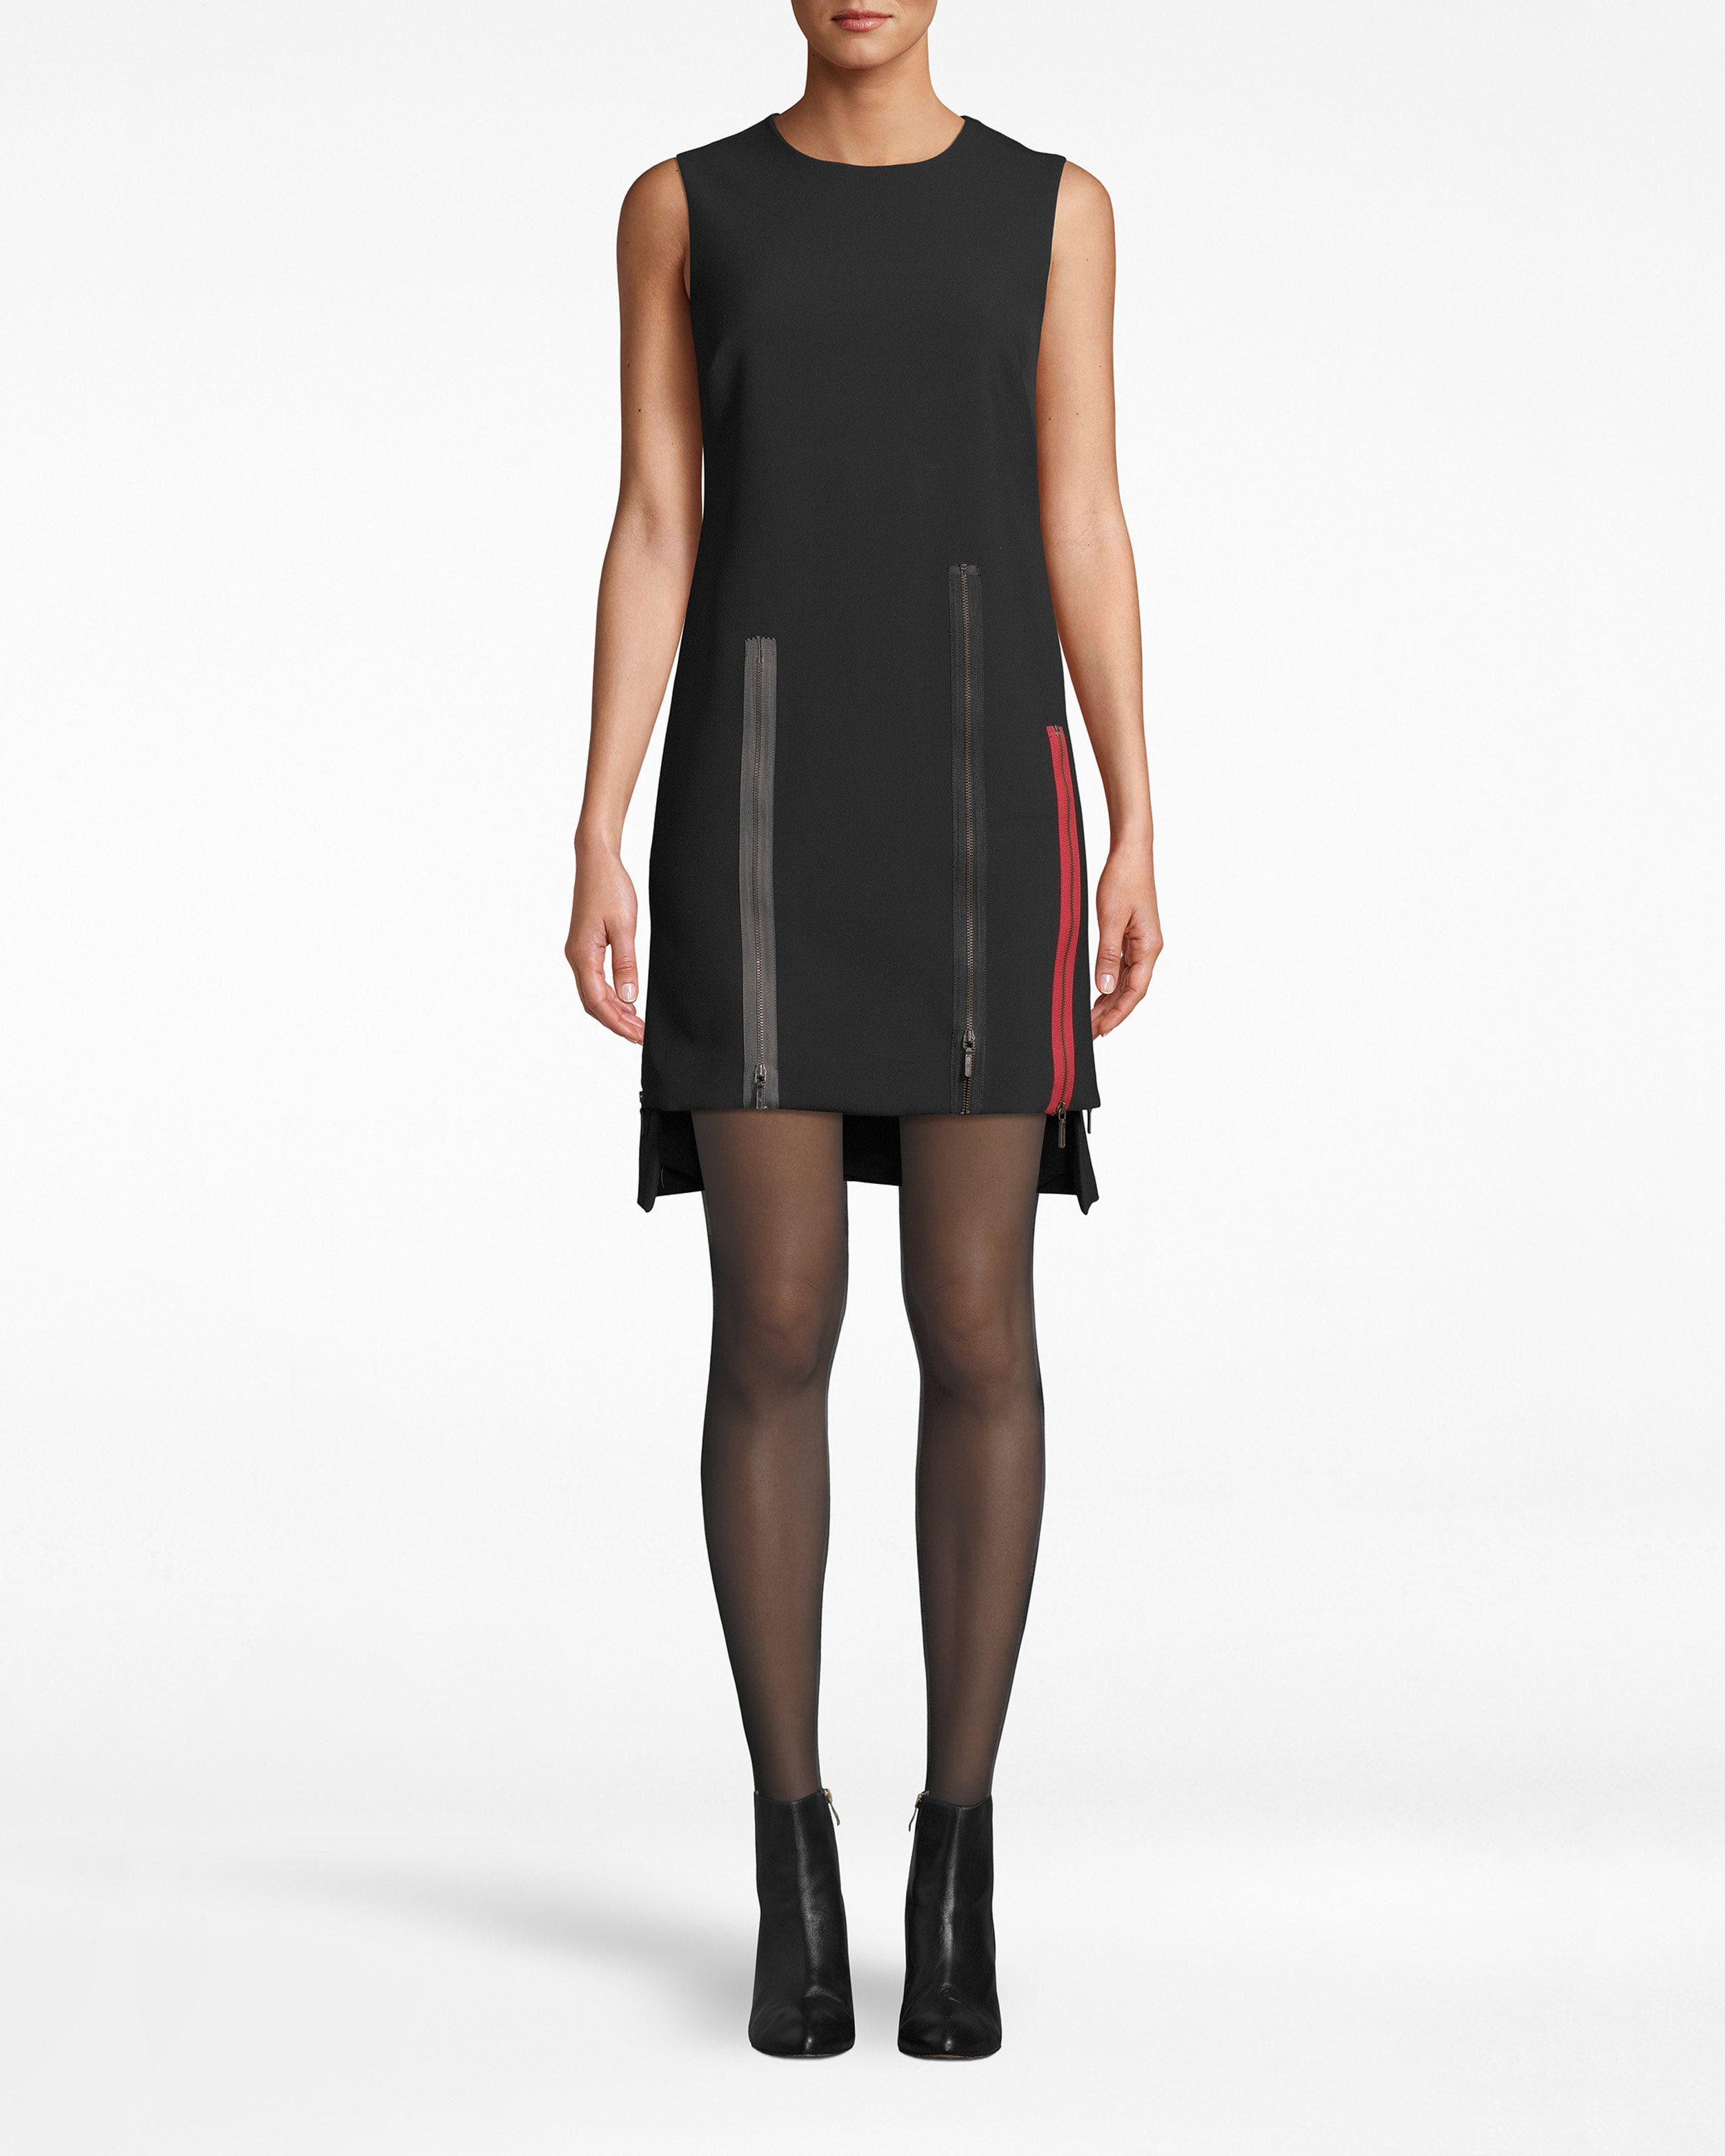 nicole miller exposed zippers shift dress in black | polyester/viscose/elastane | size petite